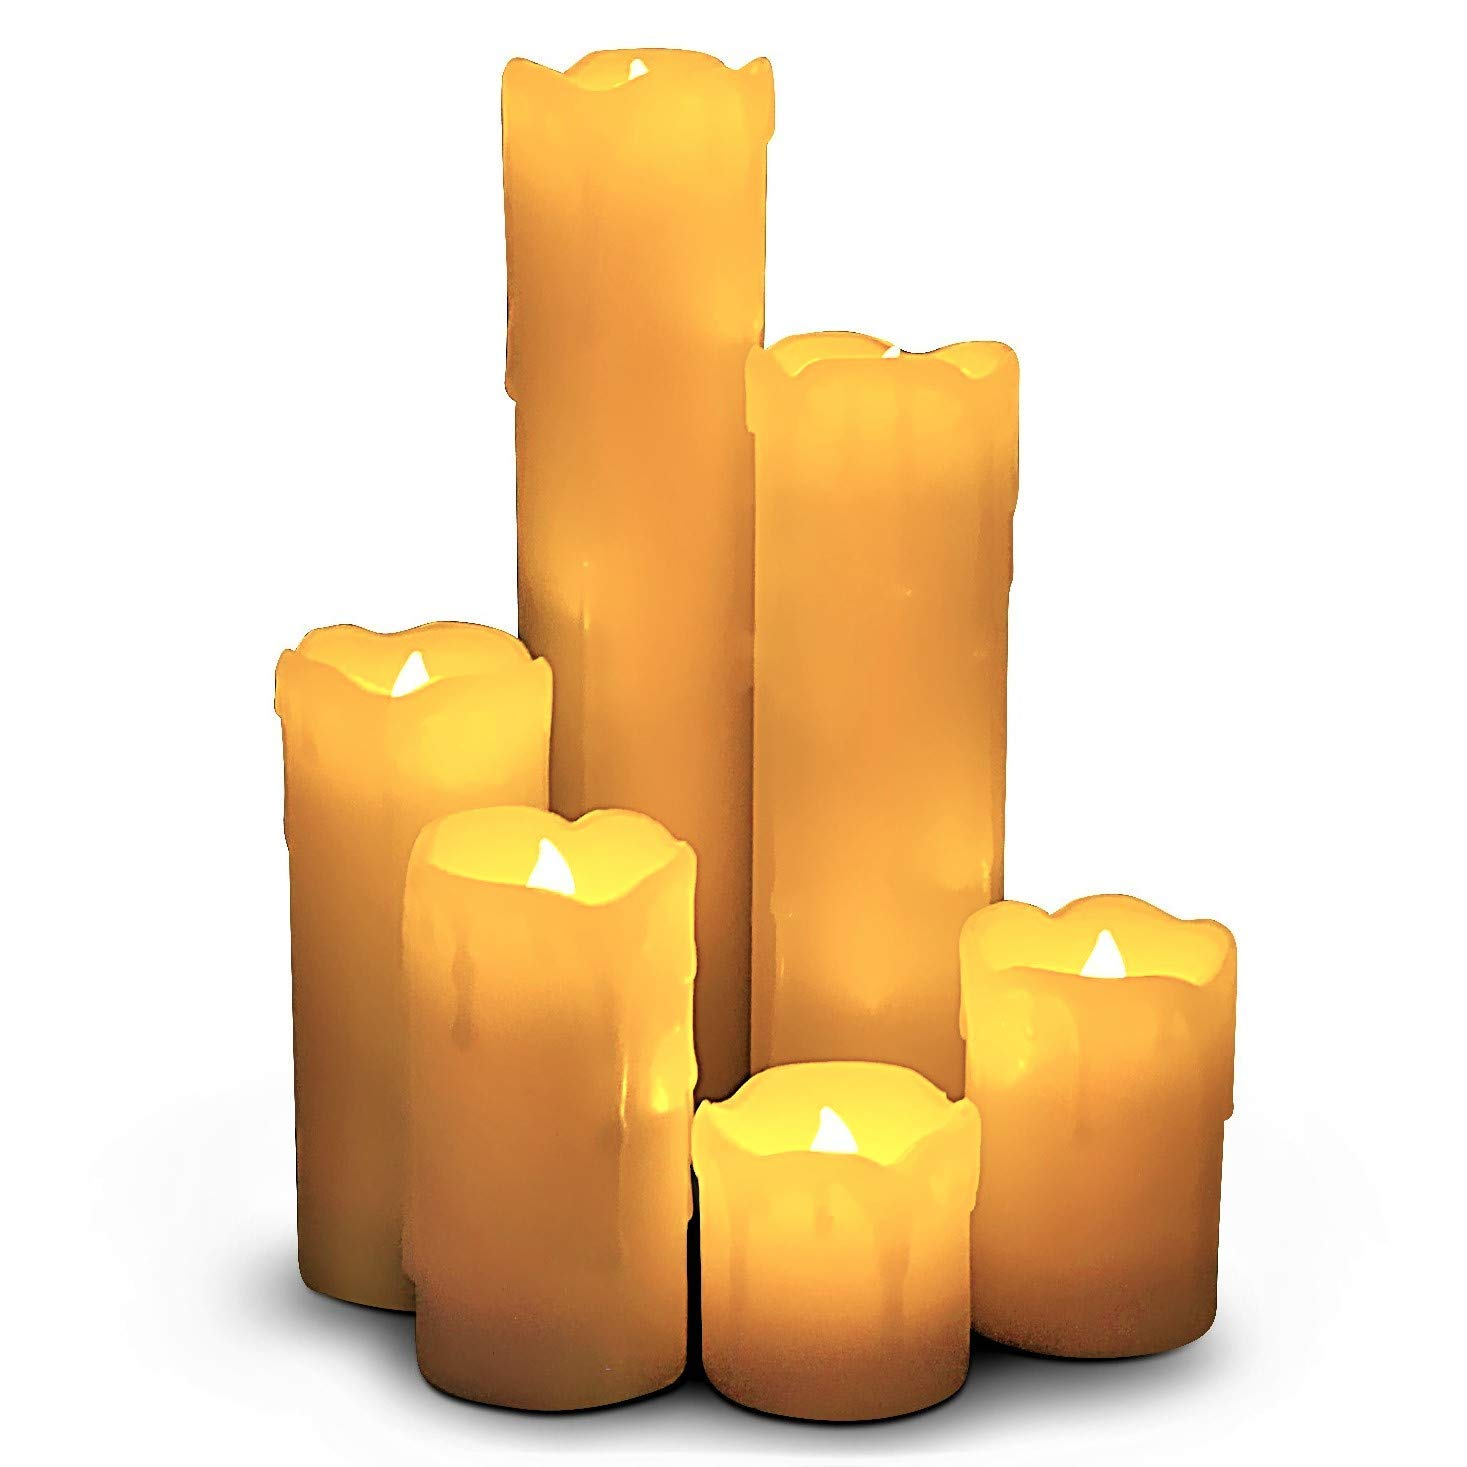 LED Lytes Flameless Candles with Timer, Slim Set of 6, 2 Inches Wide and 2-9 Tall, Ivory dripping Wax and Flickering Amber Yellow Flame Battery Operated Electric Candle